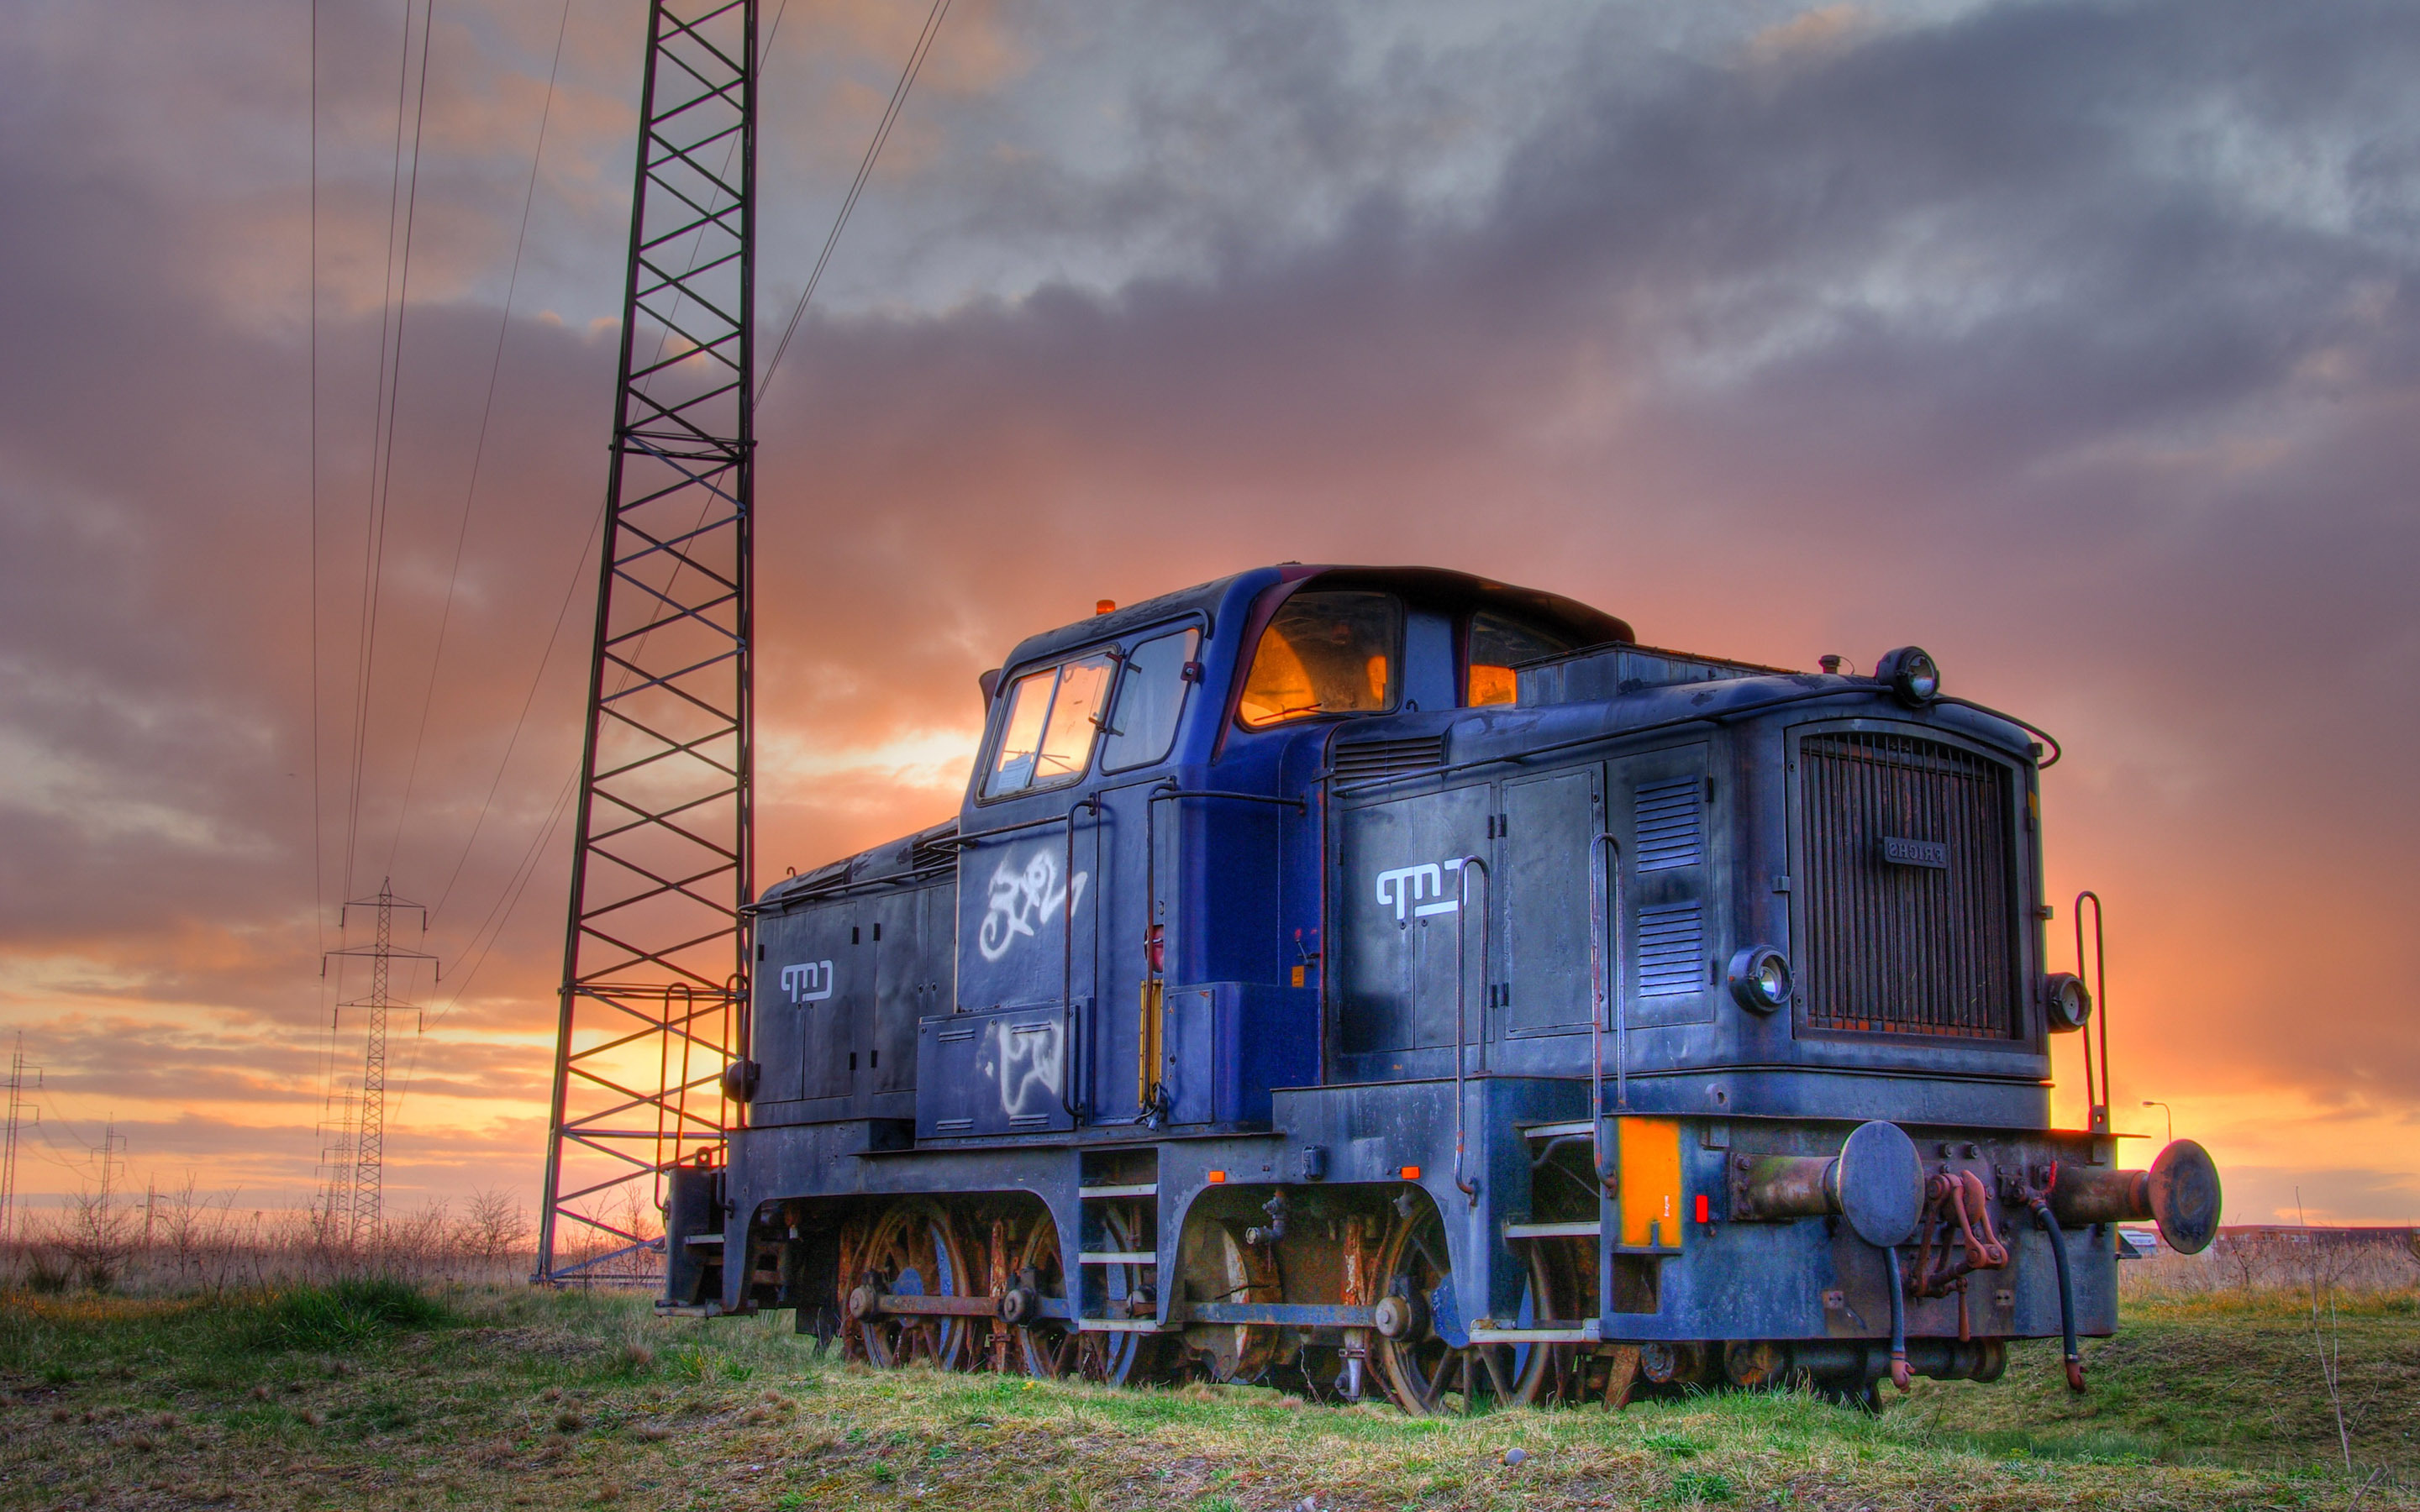 19 Fantastic HD Locomotive Wallpapers